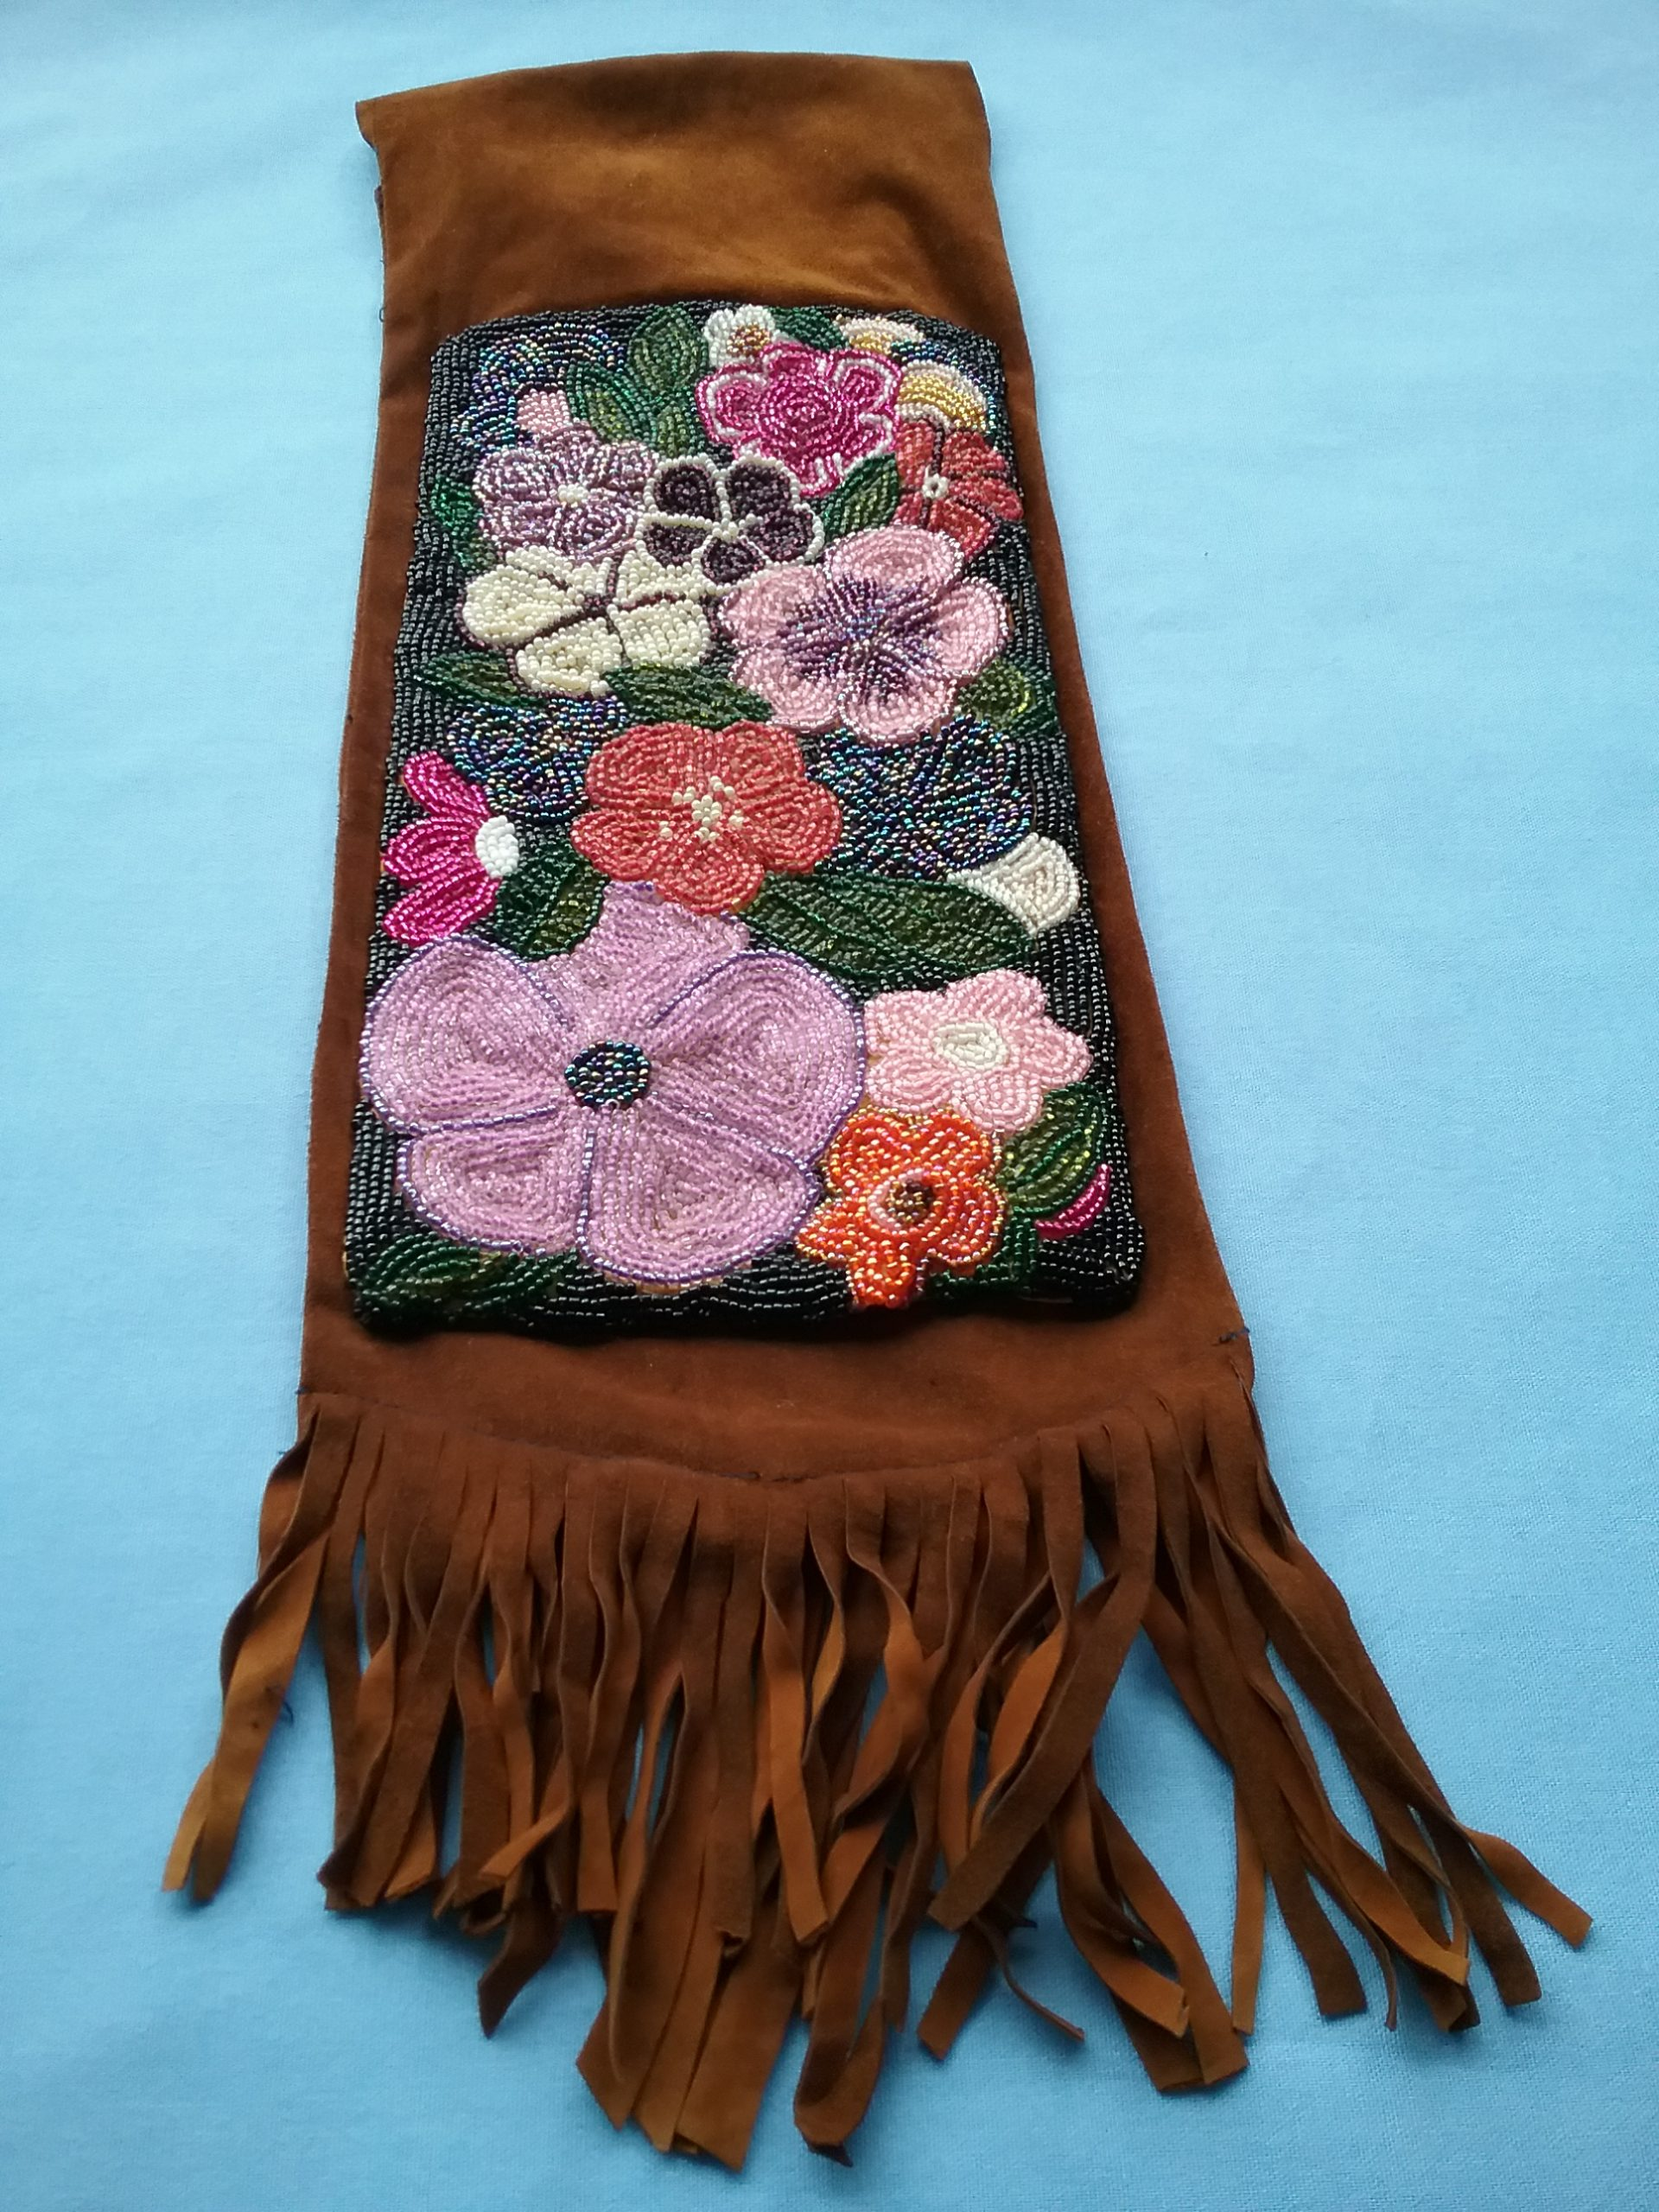 Beaded leather bag made by Sister Carol Schmit, OSF. Sr. Carol was inspired by Ojibwe floral motifs in creating this bag, which was made to hold precious elements like stones and sweet grass. The dark colors in the design are meant to indicate the many beauties of nature that are being lost. On loan for the BEAD Exhibit from Sr. Carol Schmit.